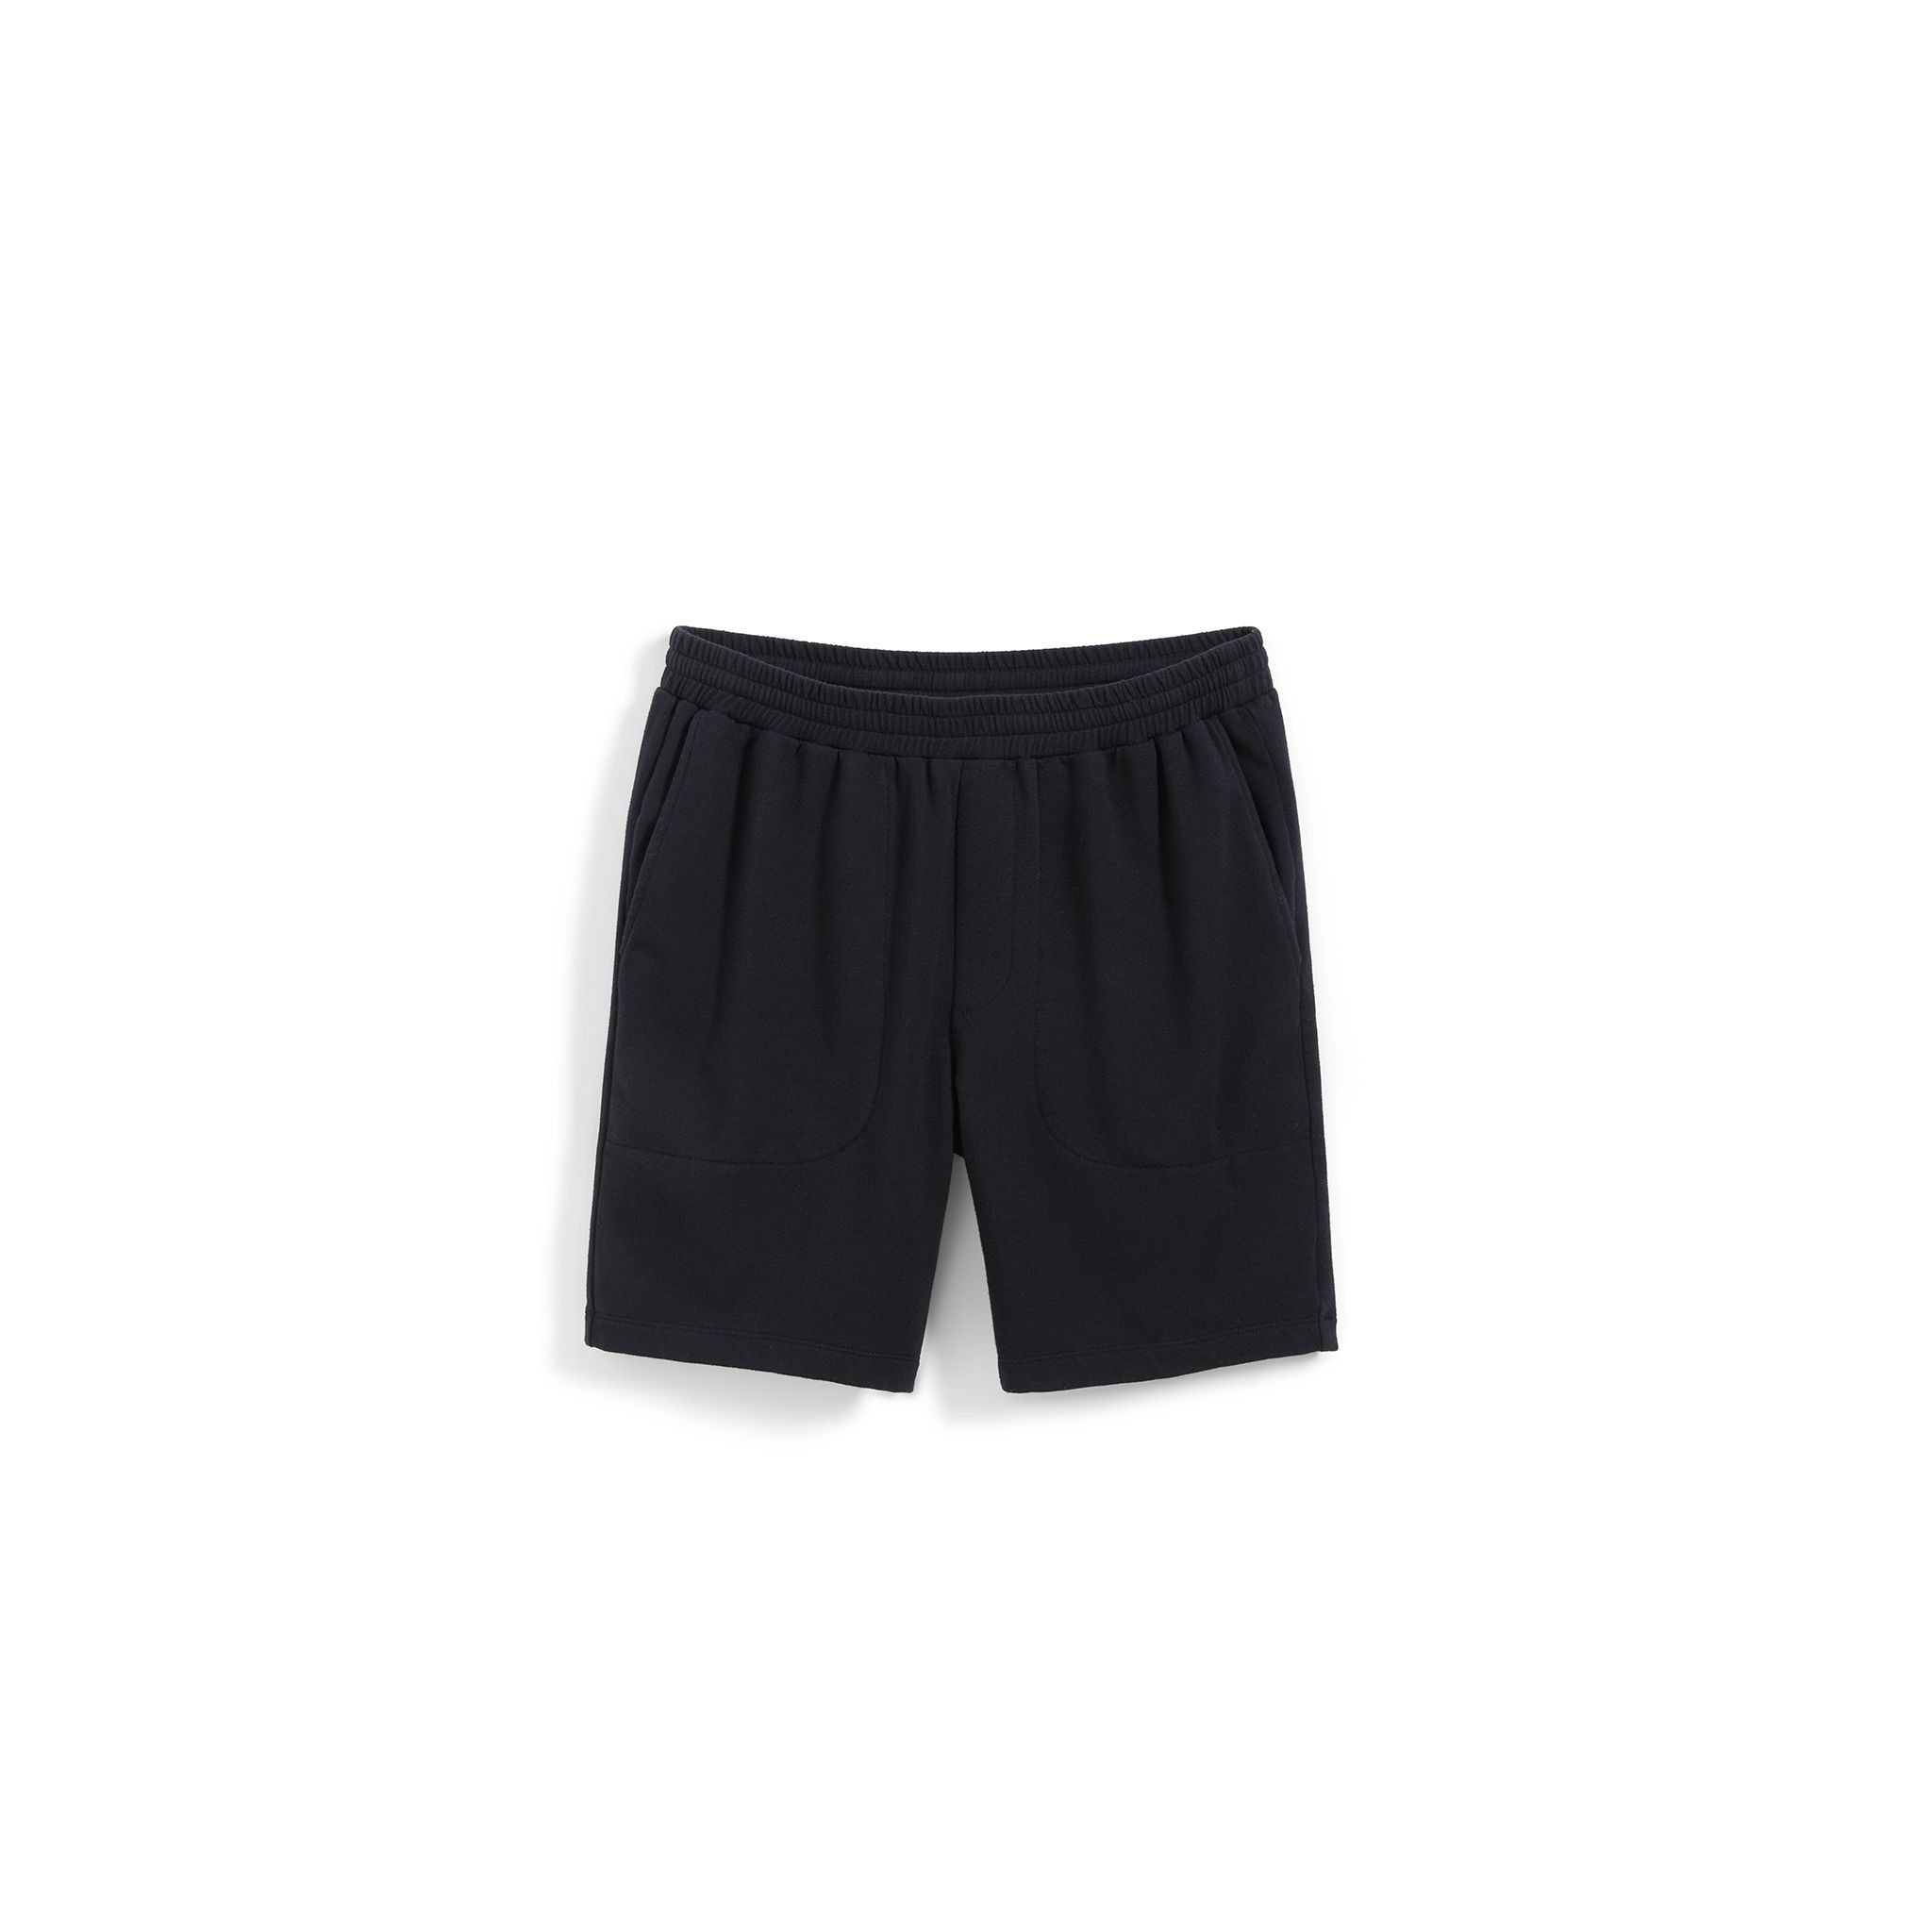 The Bowery Short in Black